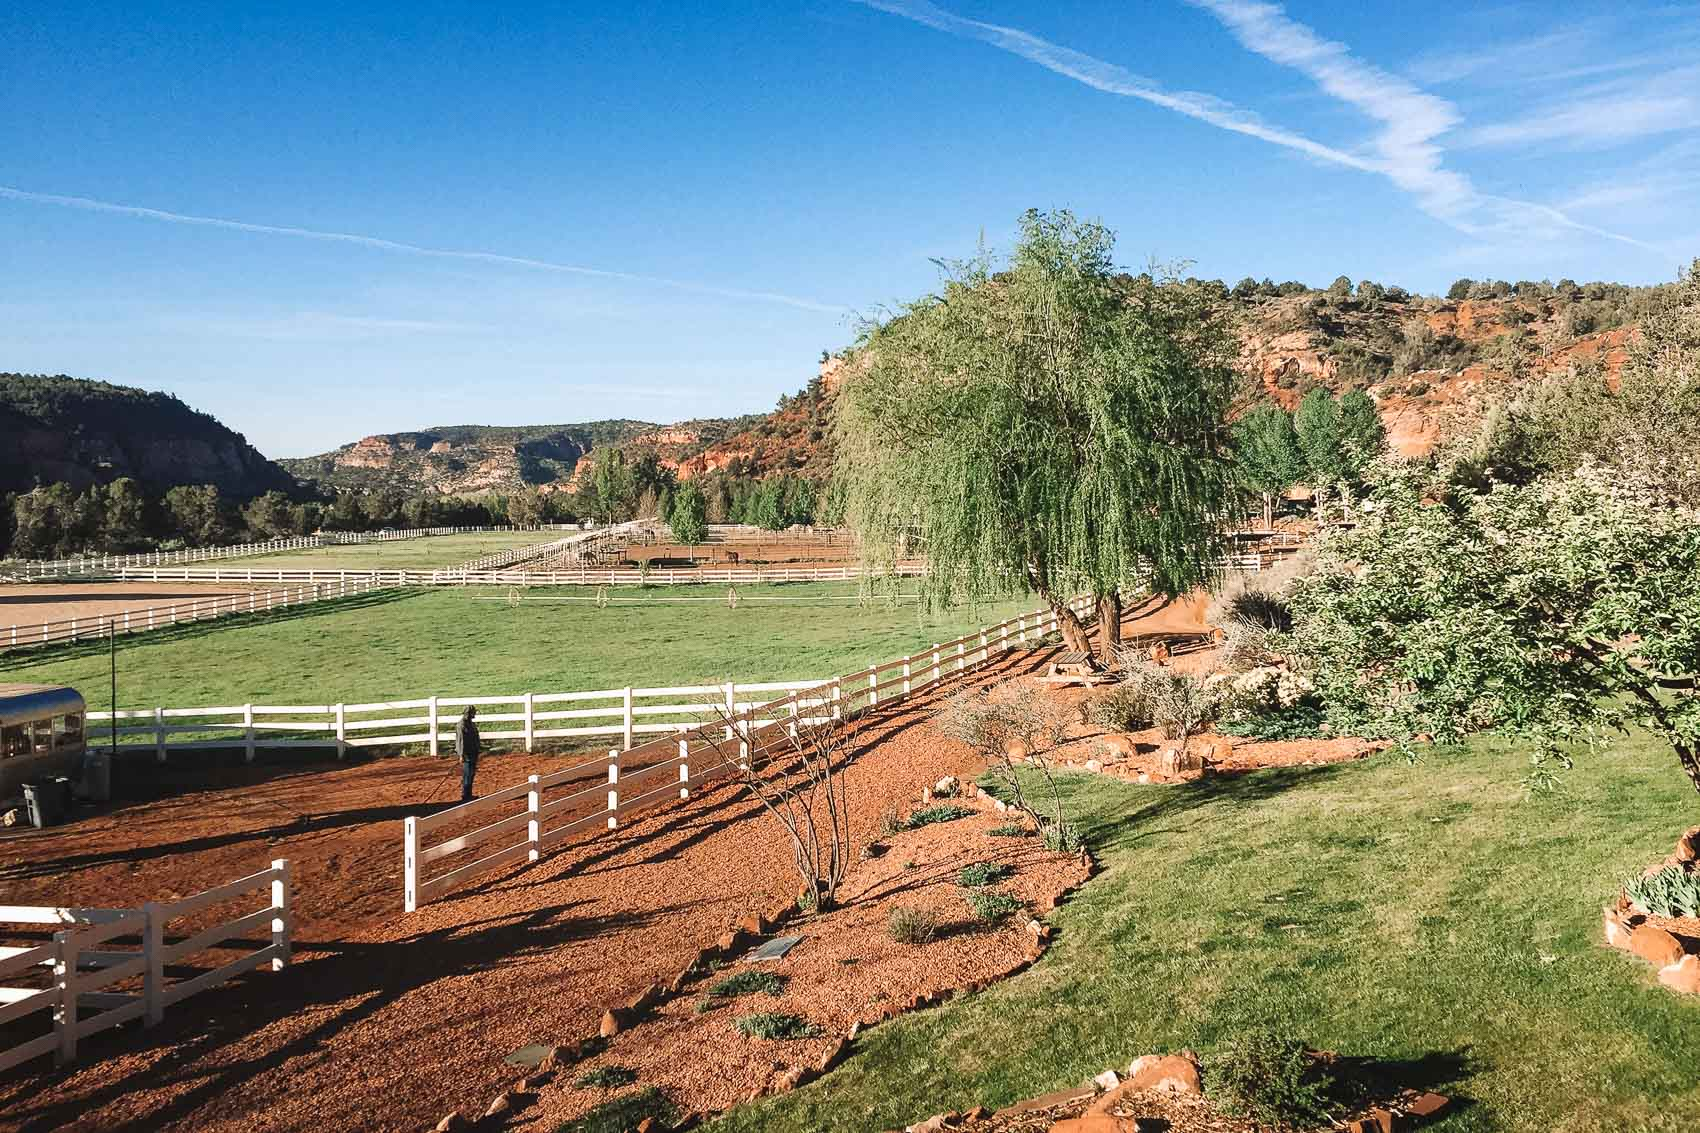 view of the horse pastures in Best friends Animal Sanctuary in Kanab, Utah - bucket list travel